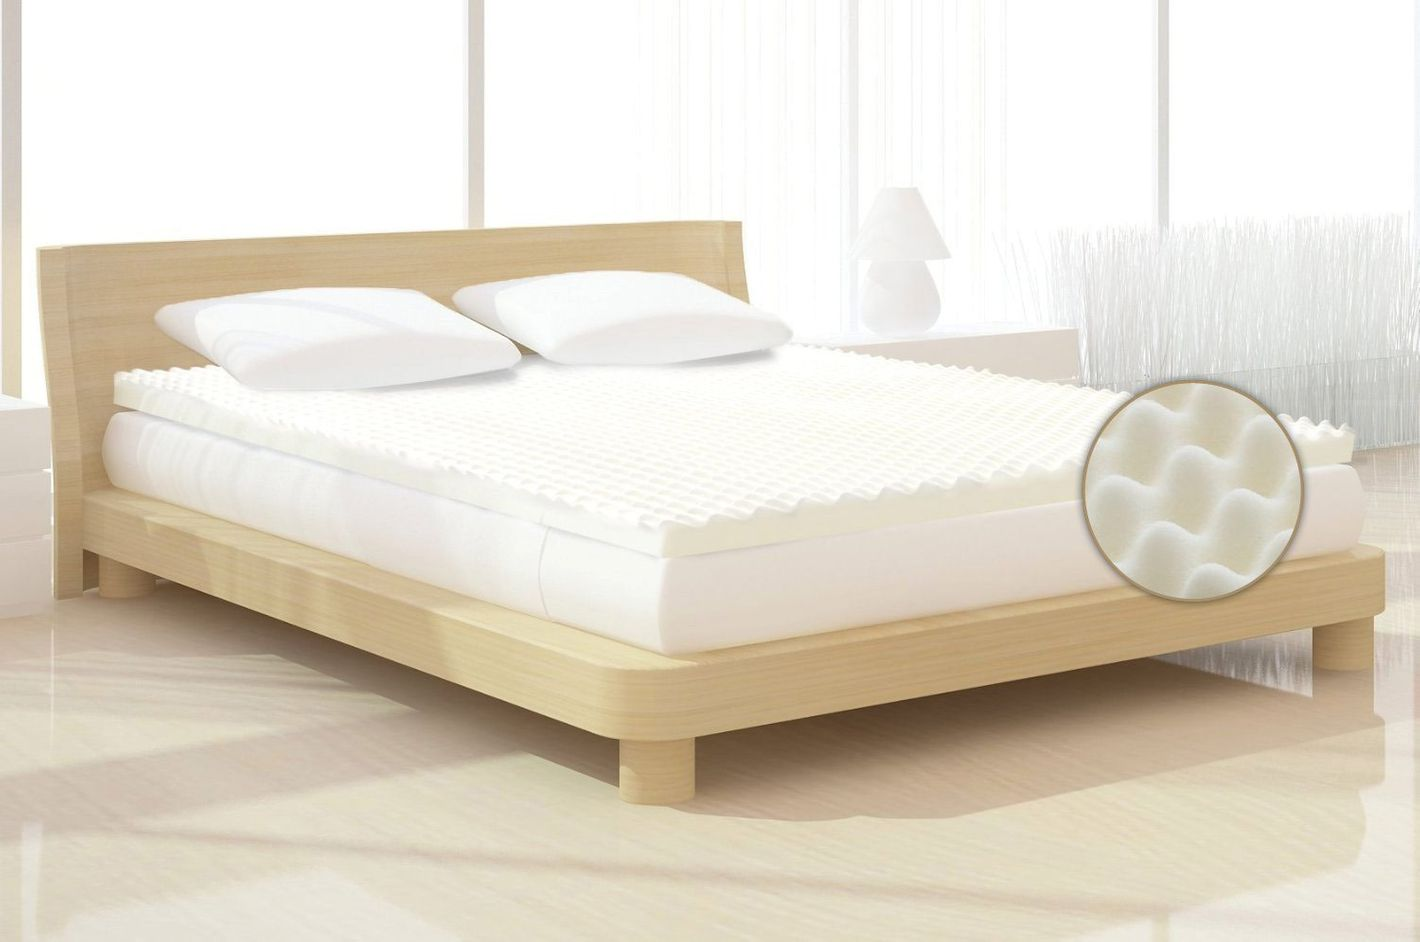 egg crate - Extra Firm Mattress Topper